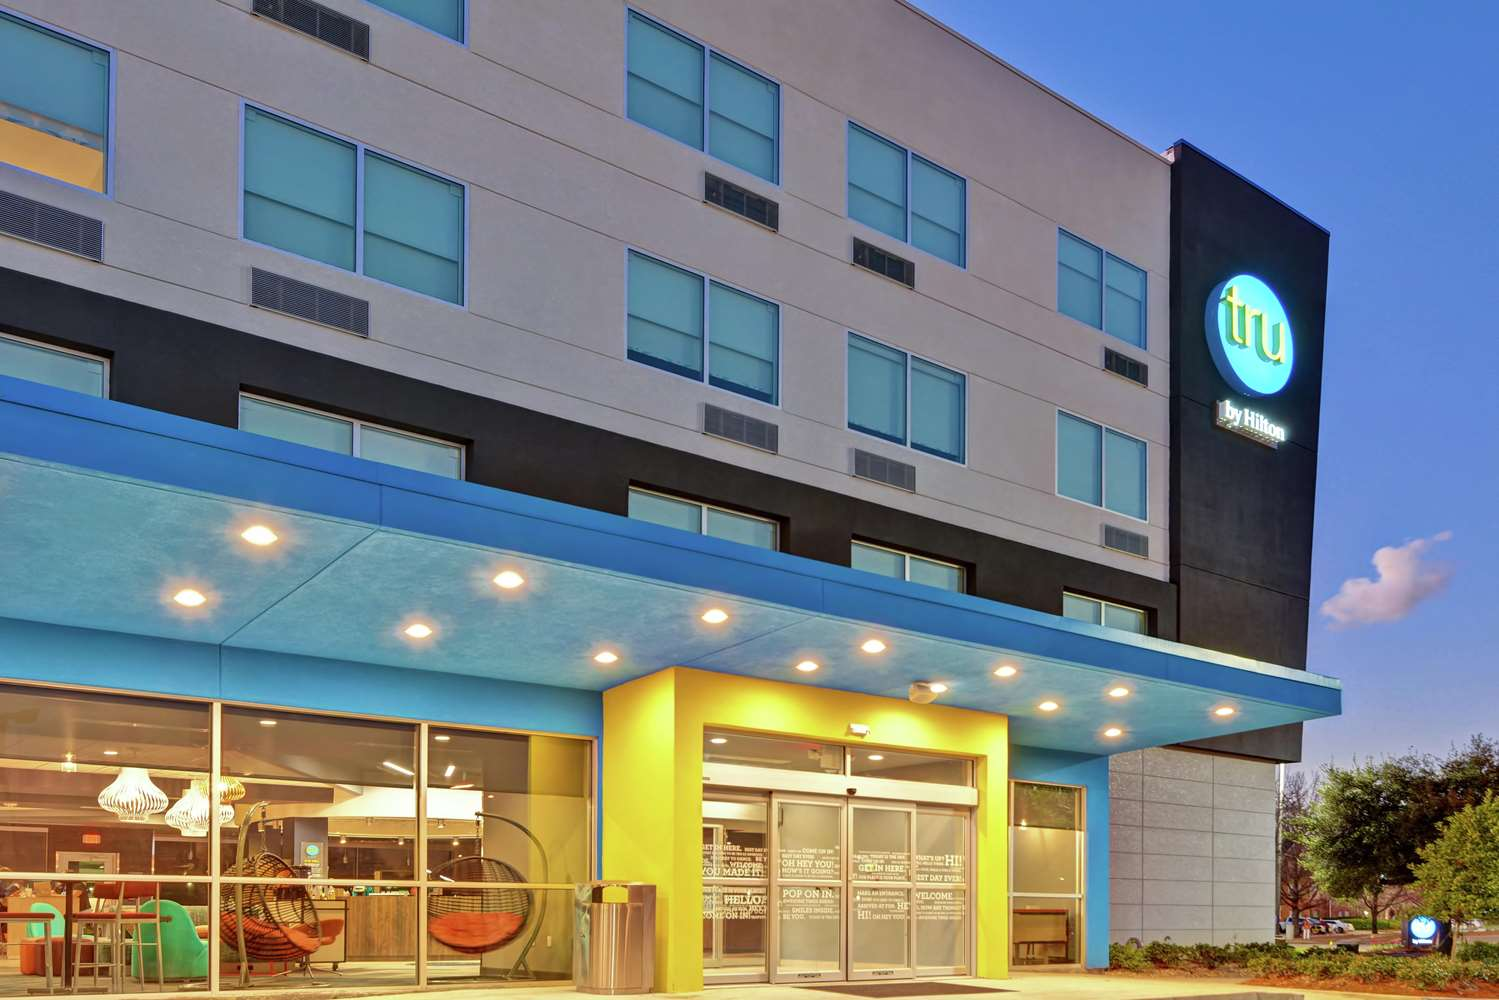 Exterior view - Tru by Hilton Hotel Citiplace Baton Rouge